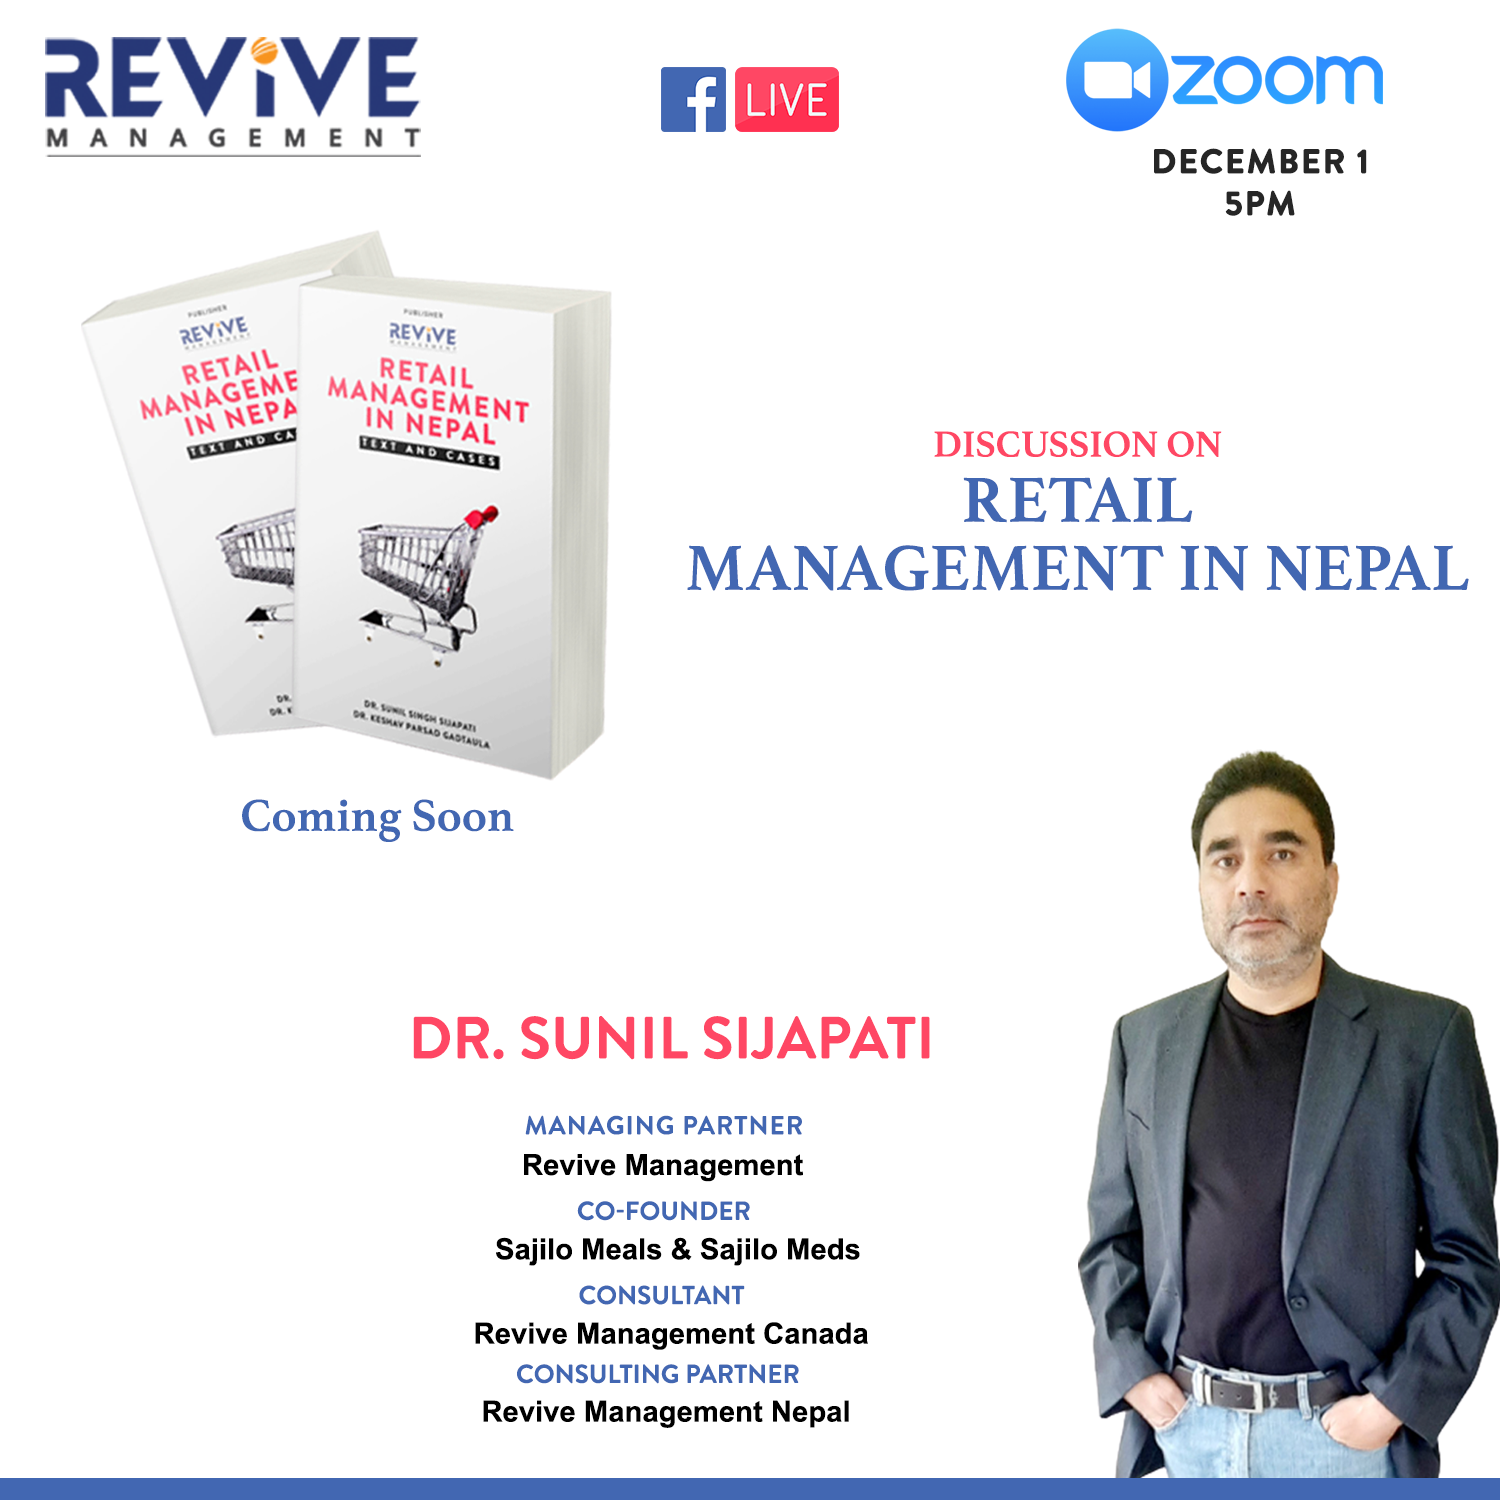 Discussion on Retail Management in Nepal